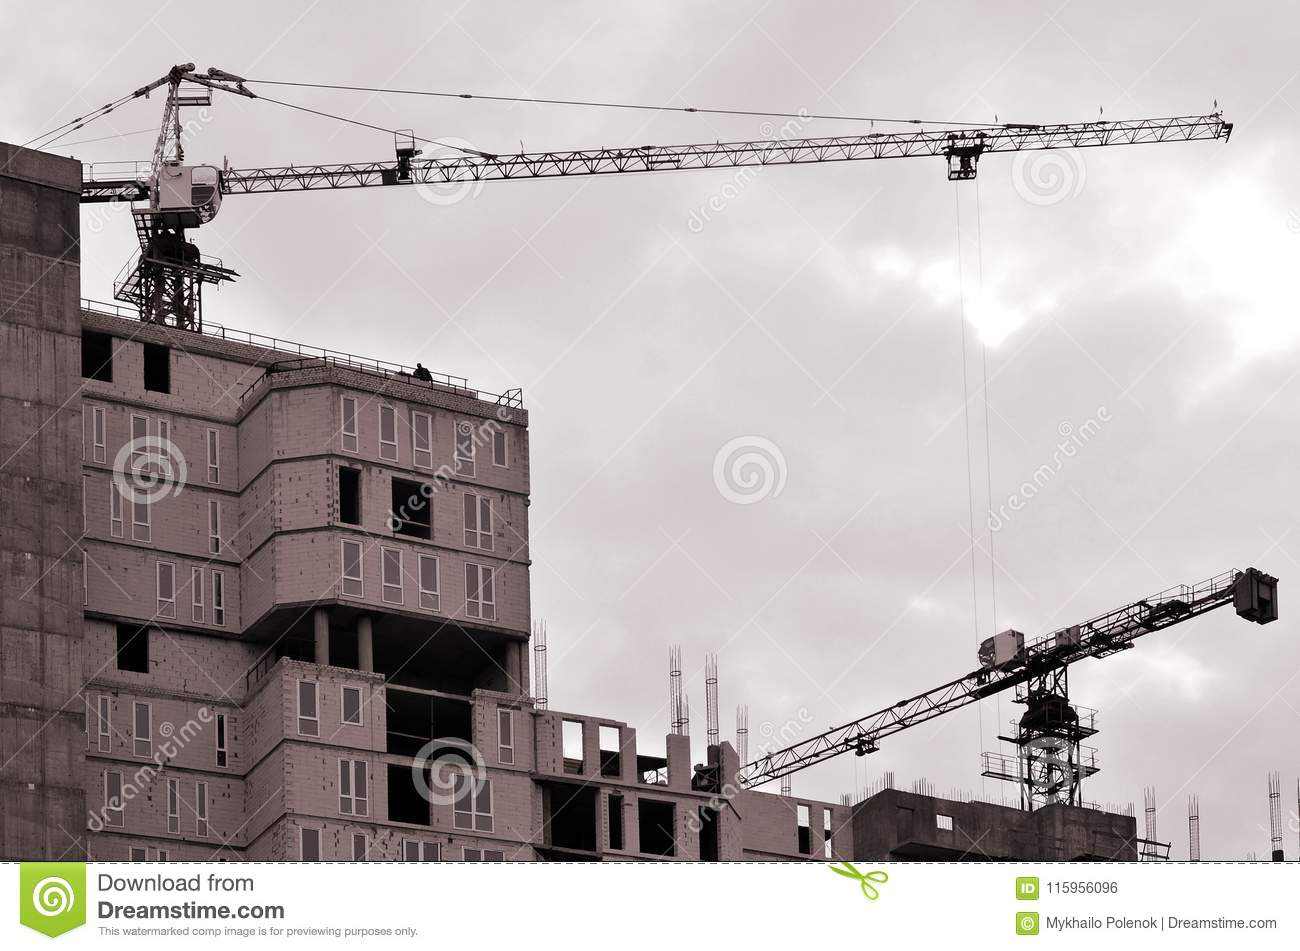 Working tall cranes inside place for with tall buildings under construction against a clear blue sky. Crane and building working